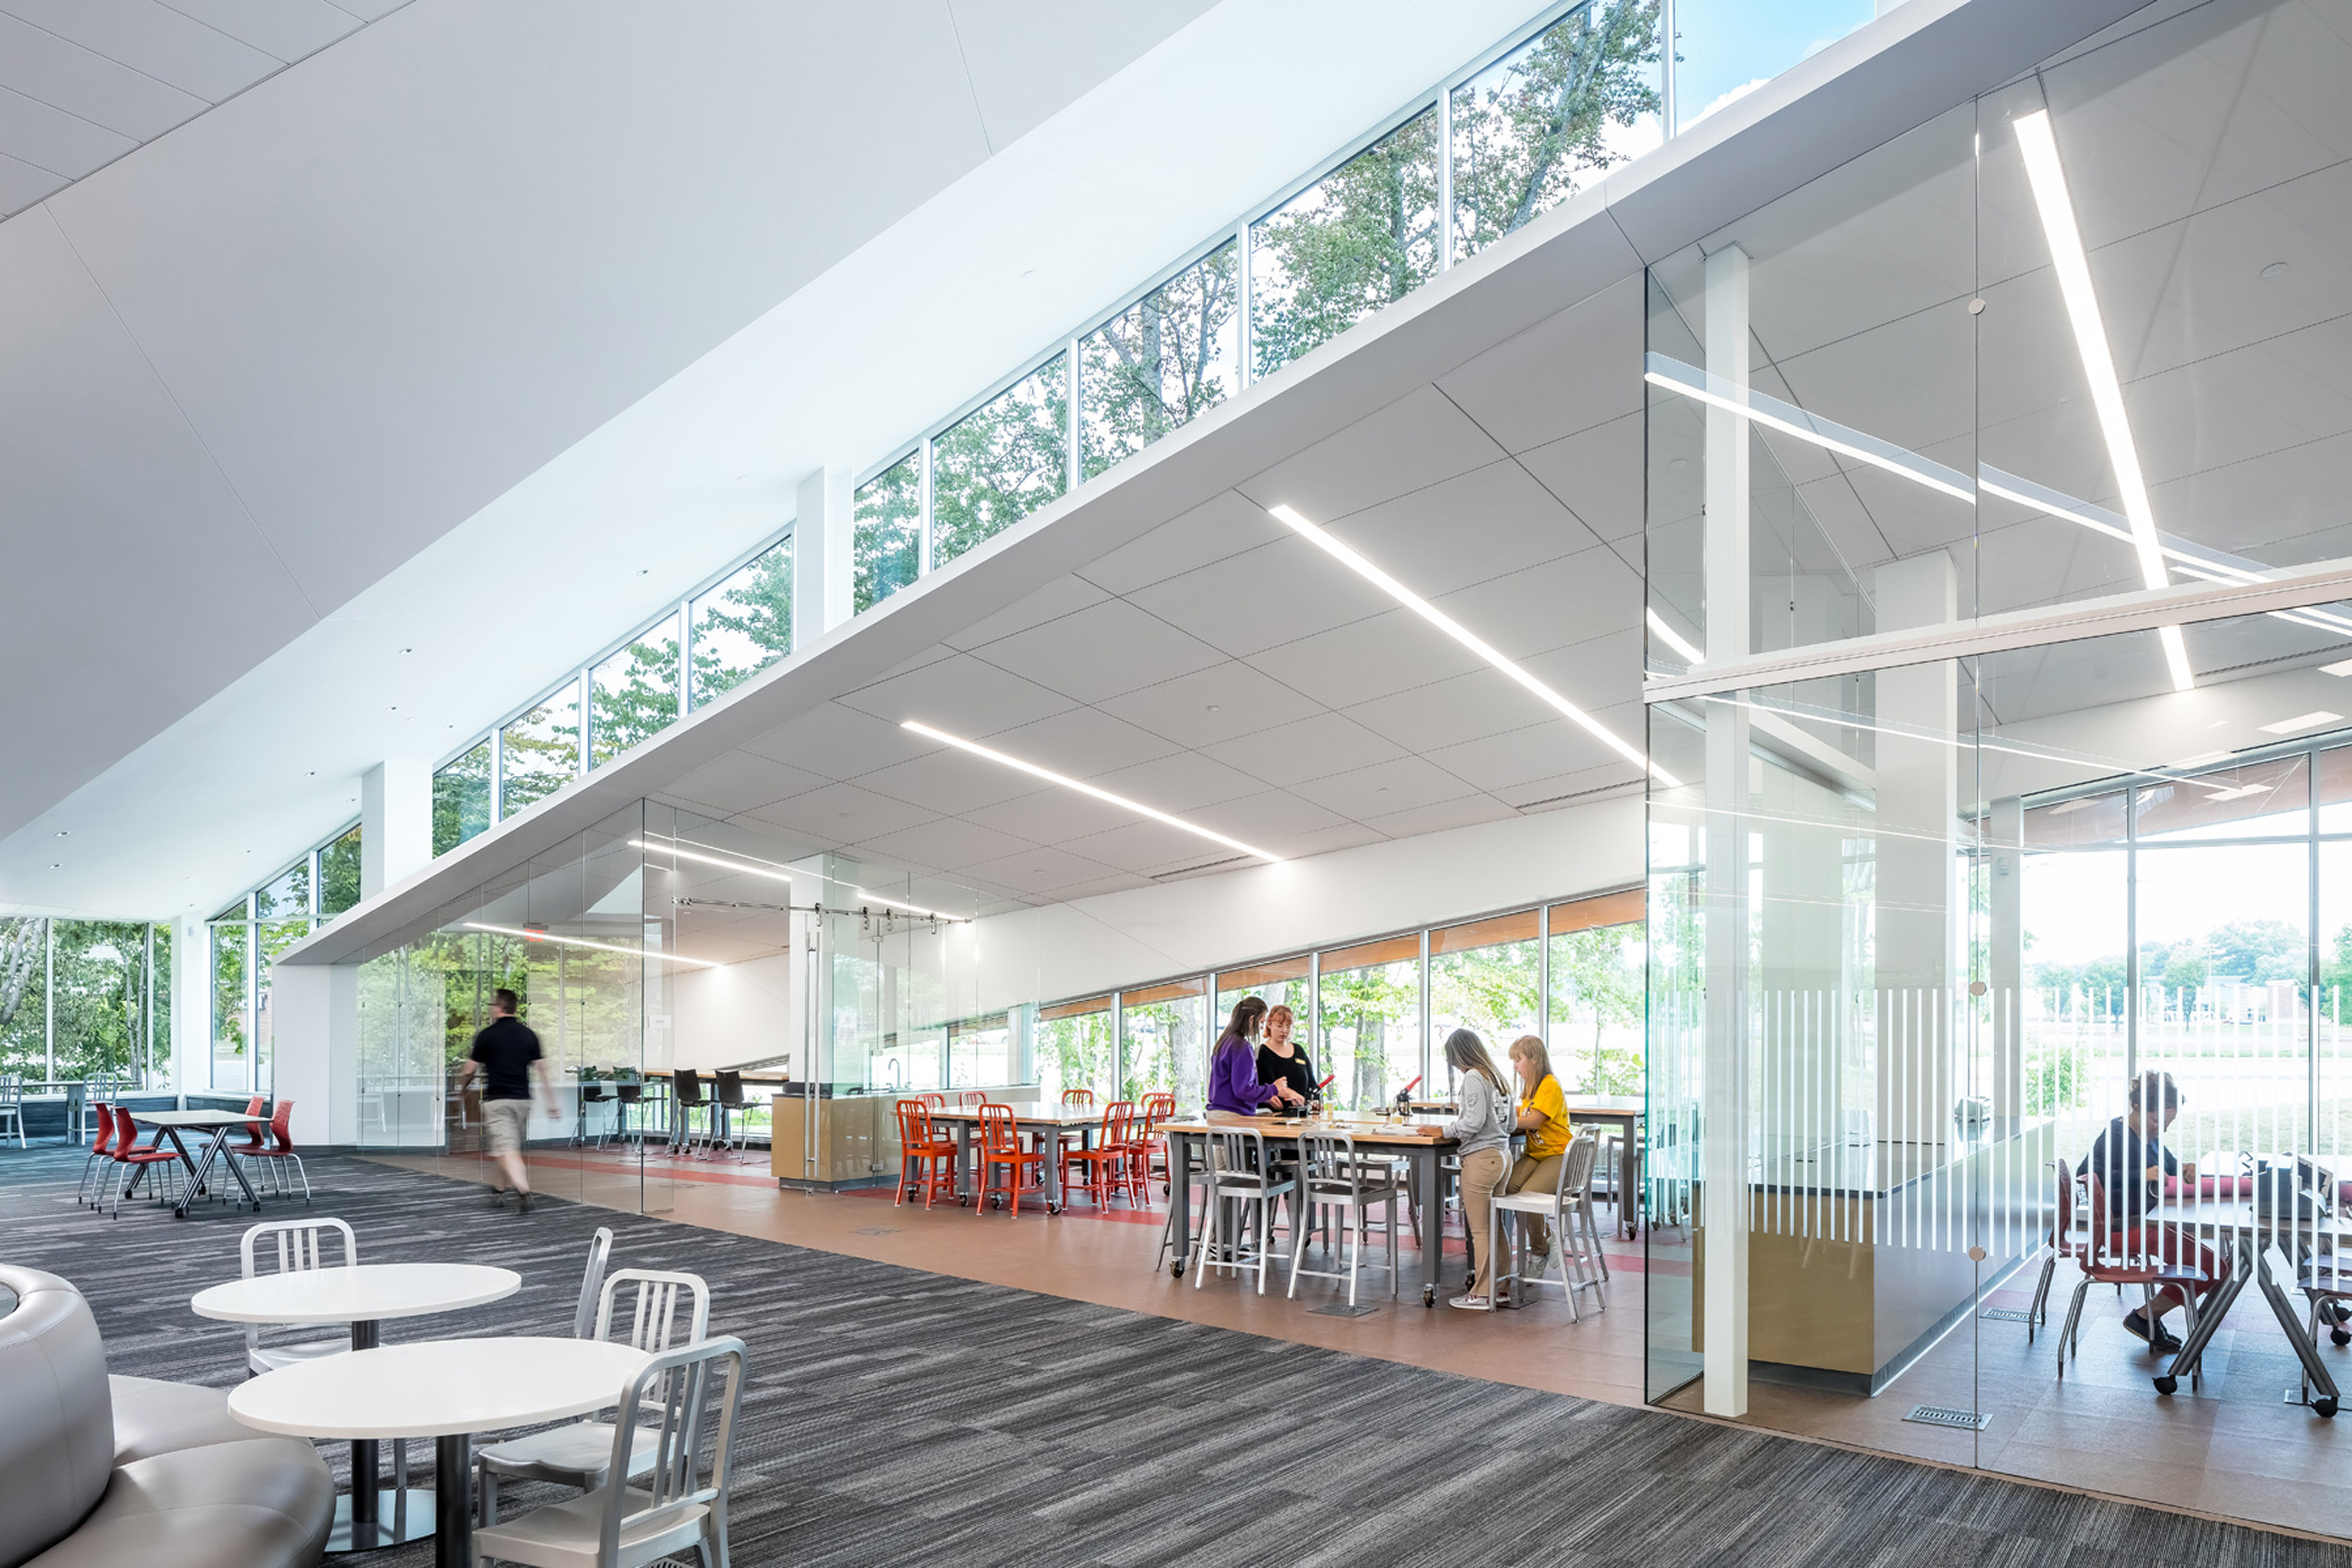 Louisville Free Public Library by MSR Design and JRA Architects